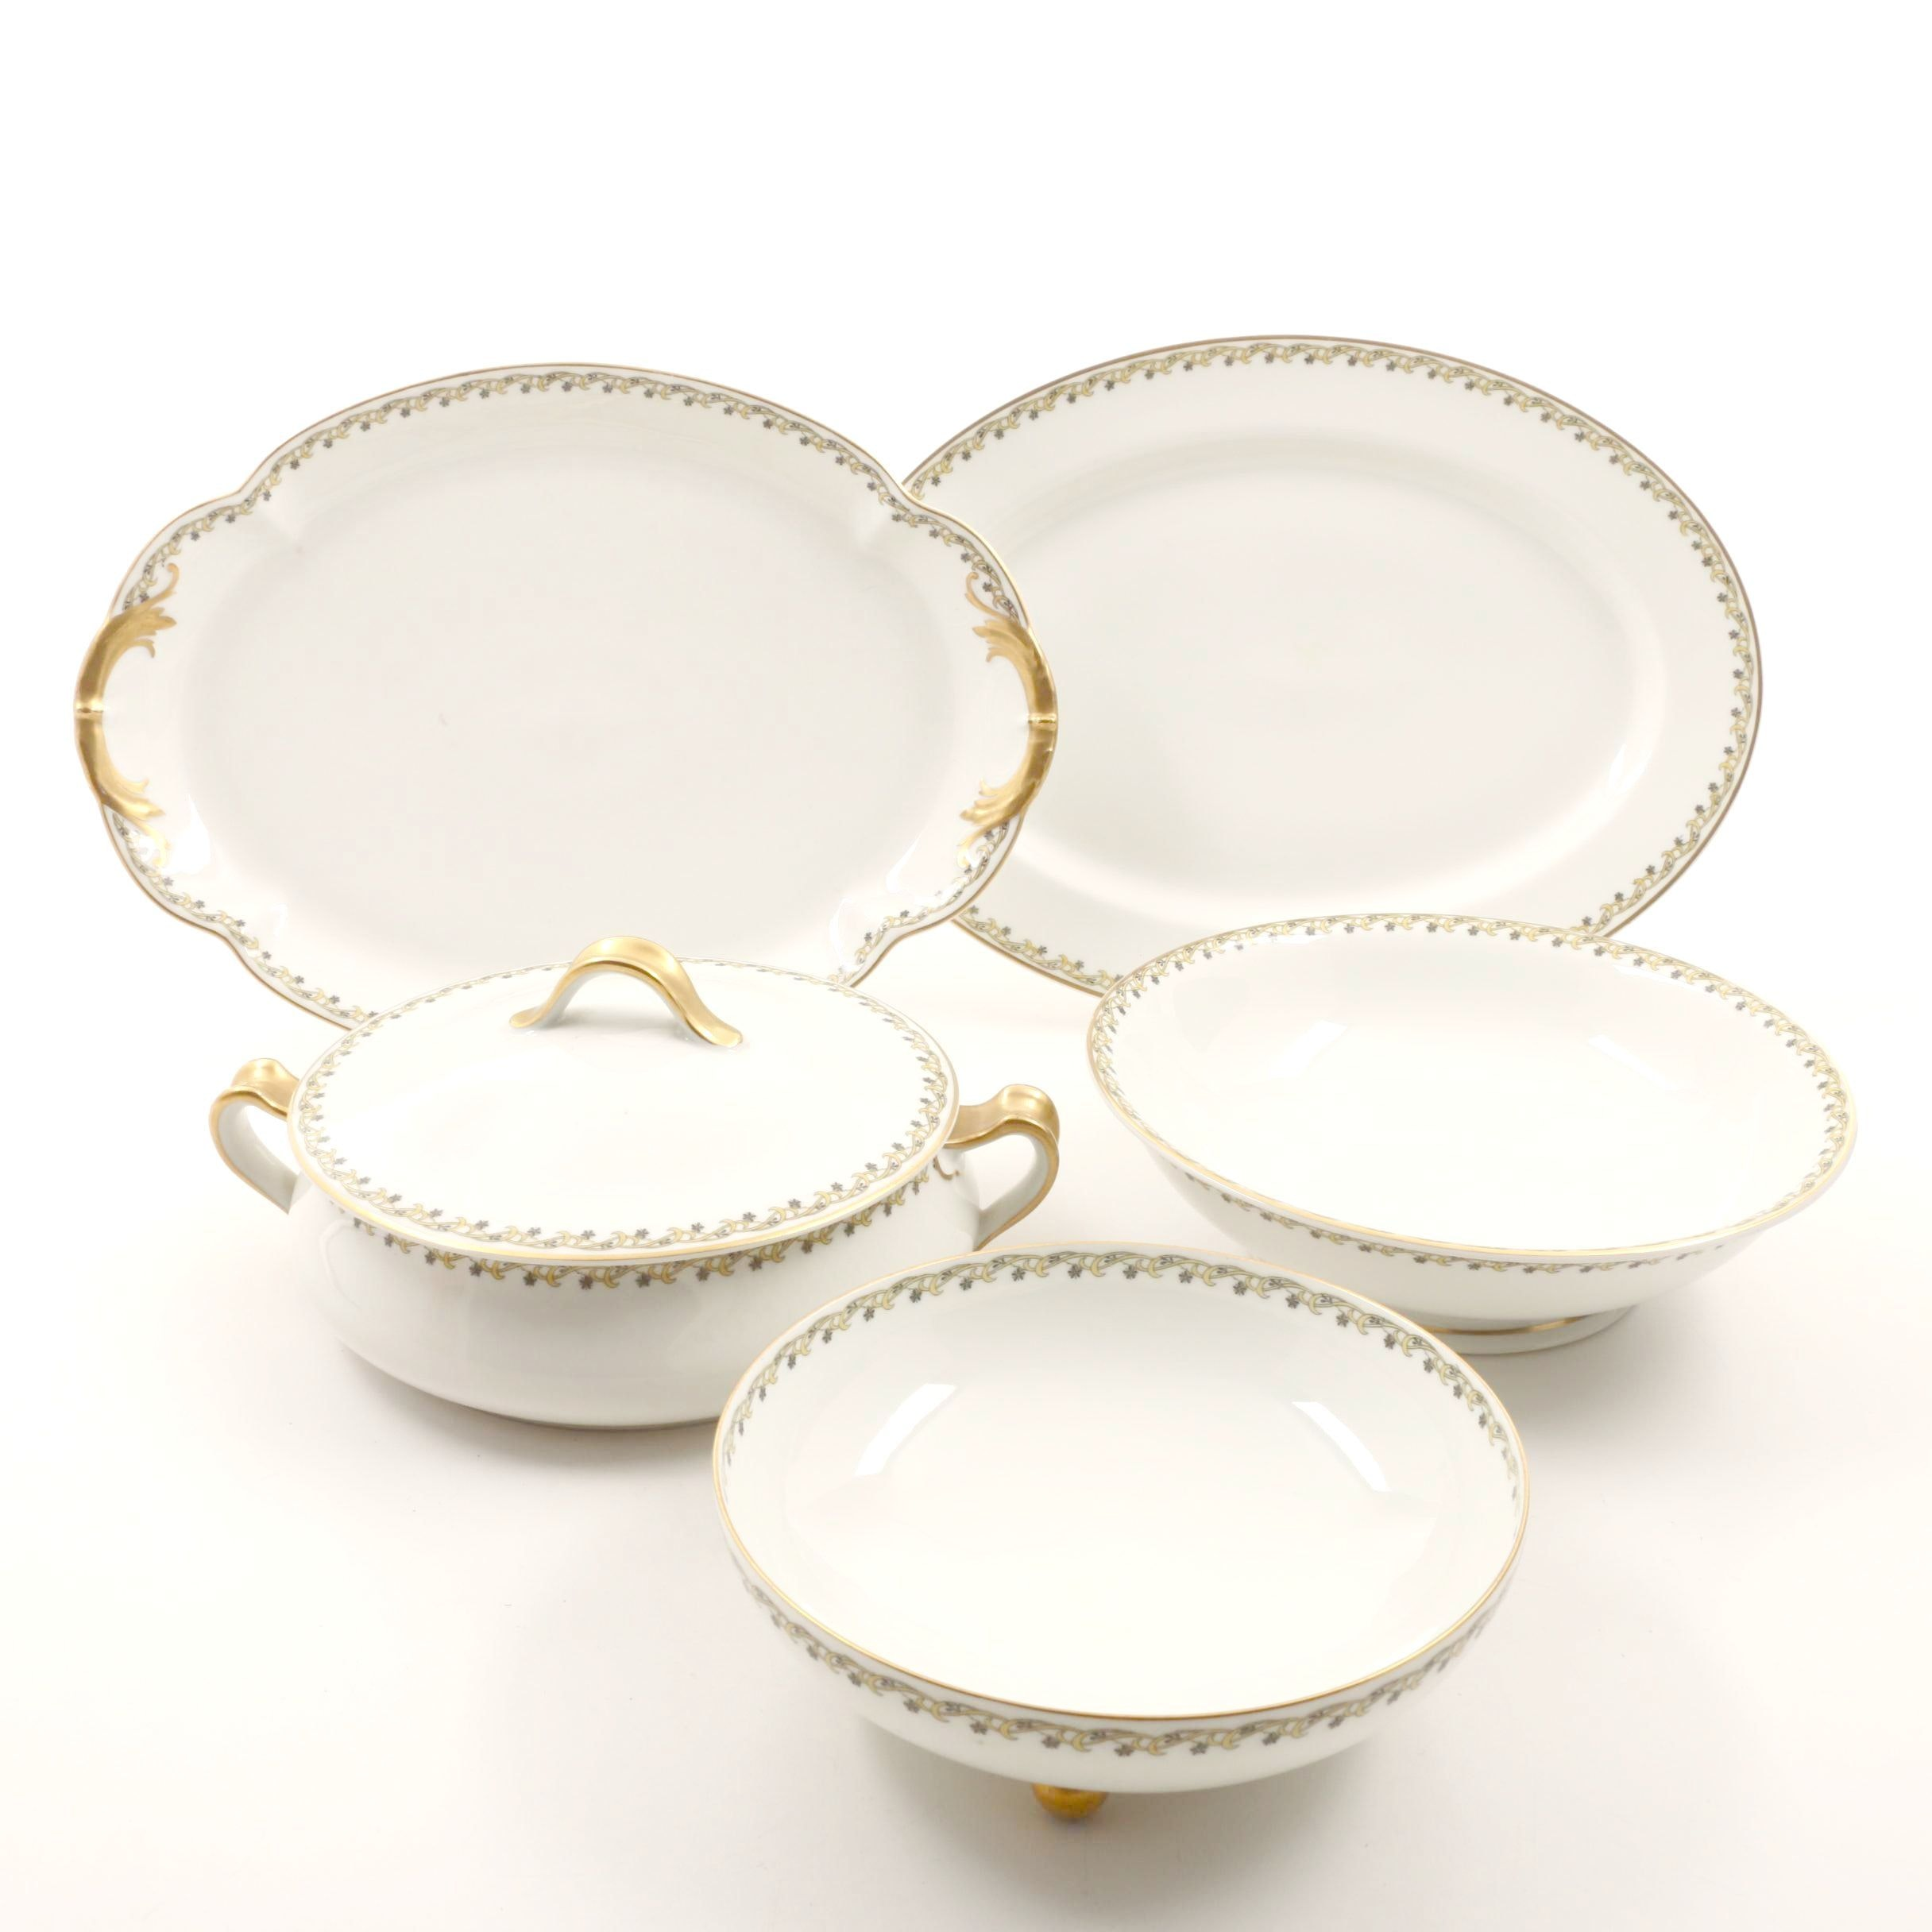 Early 20th Century Haviland & Co. Limoges Porcelain Serving Pieces